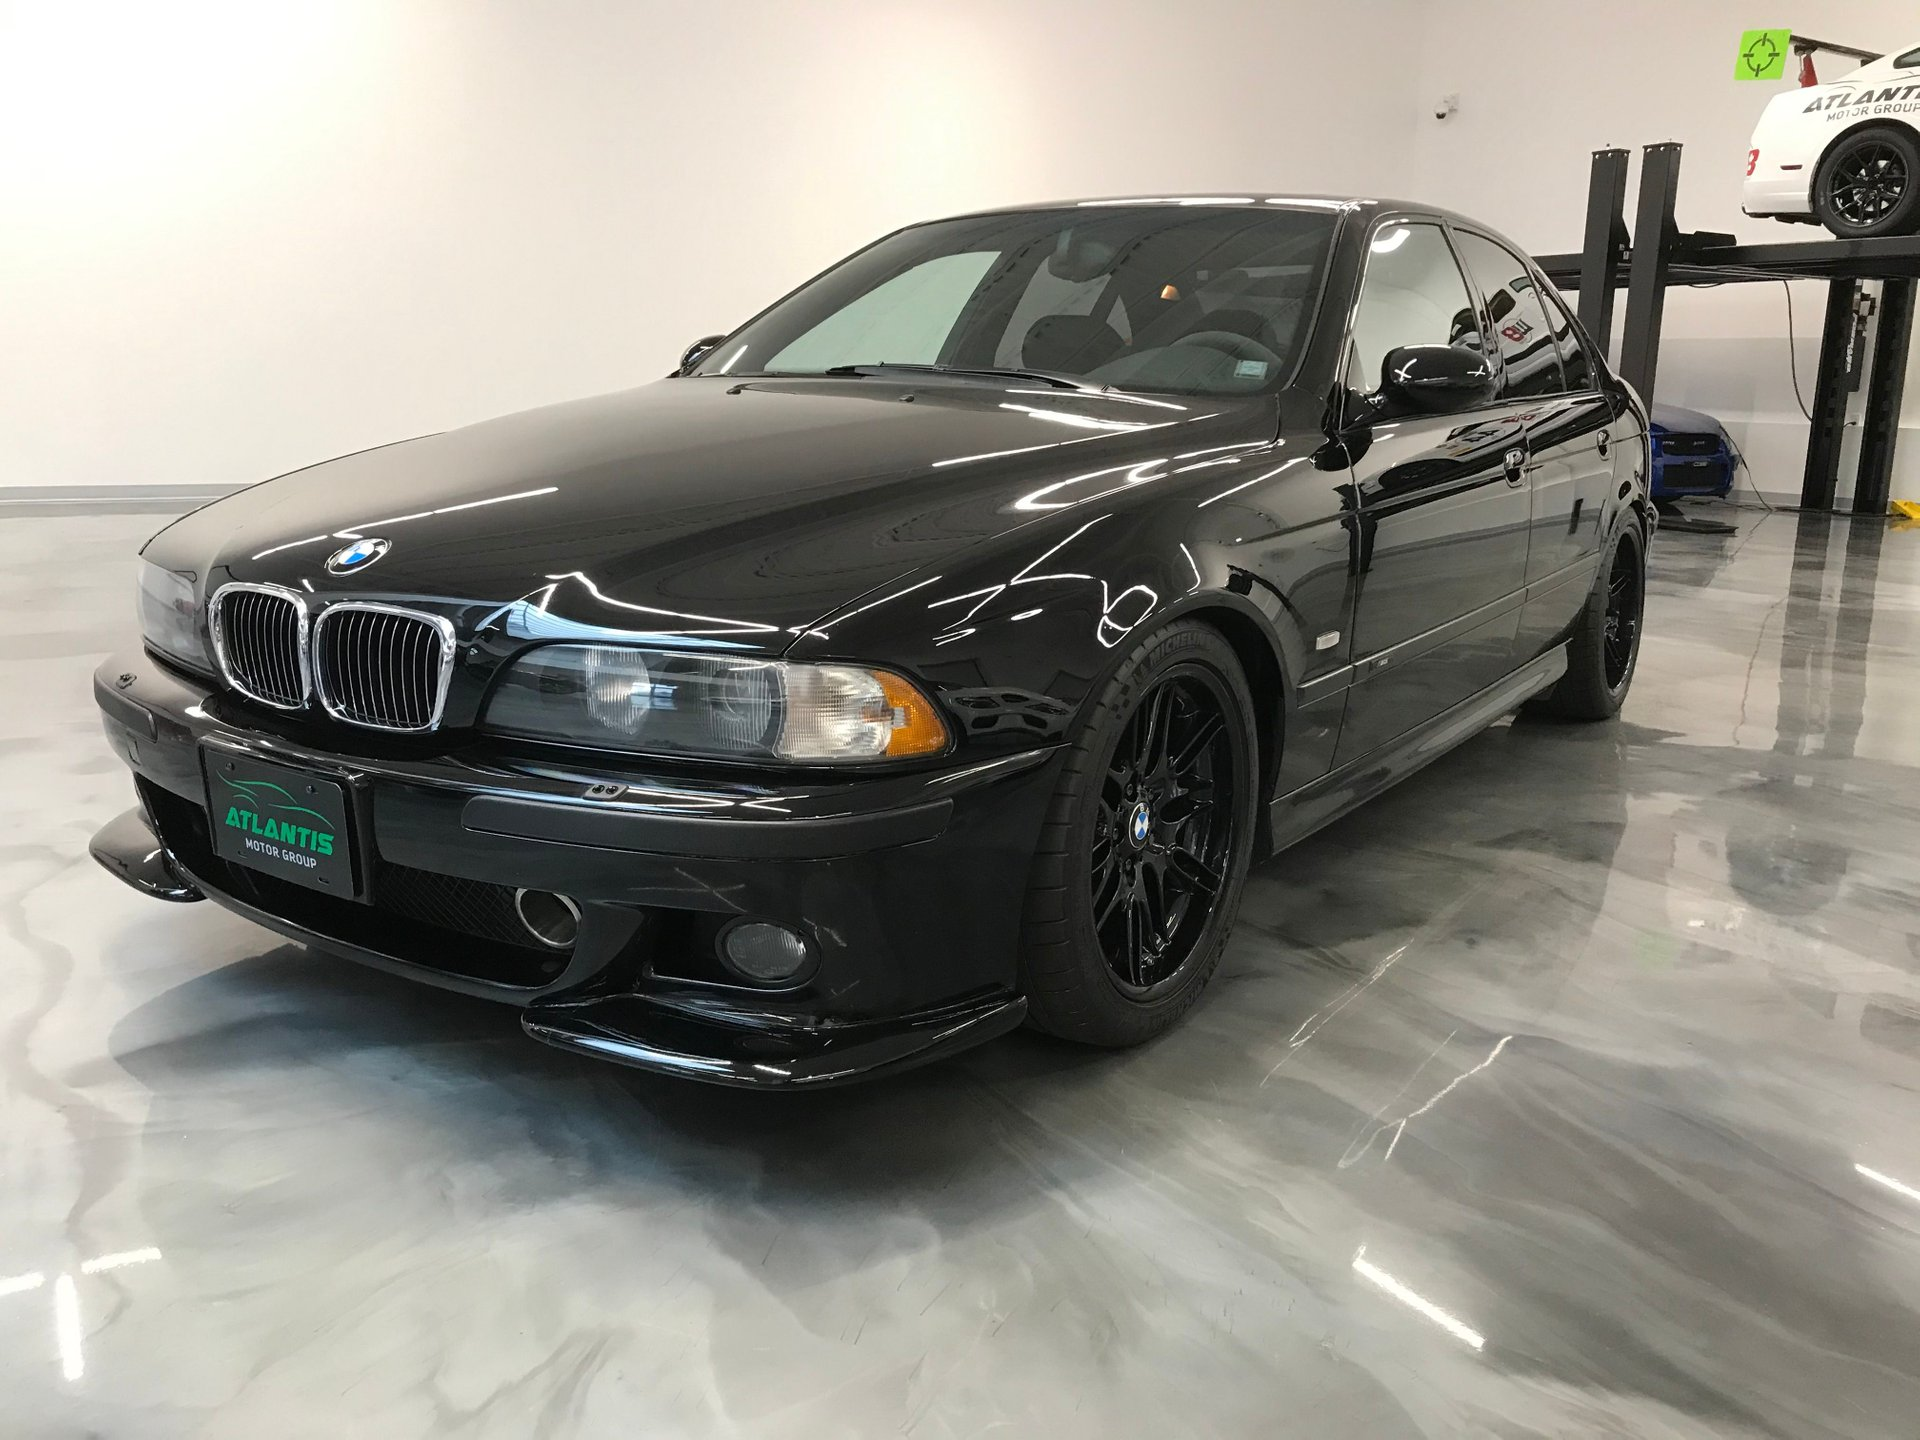 2000 bmw 5 series m5 4dr sdn 6 spd manual